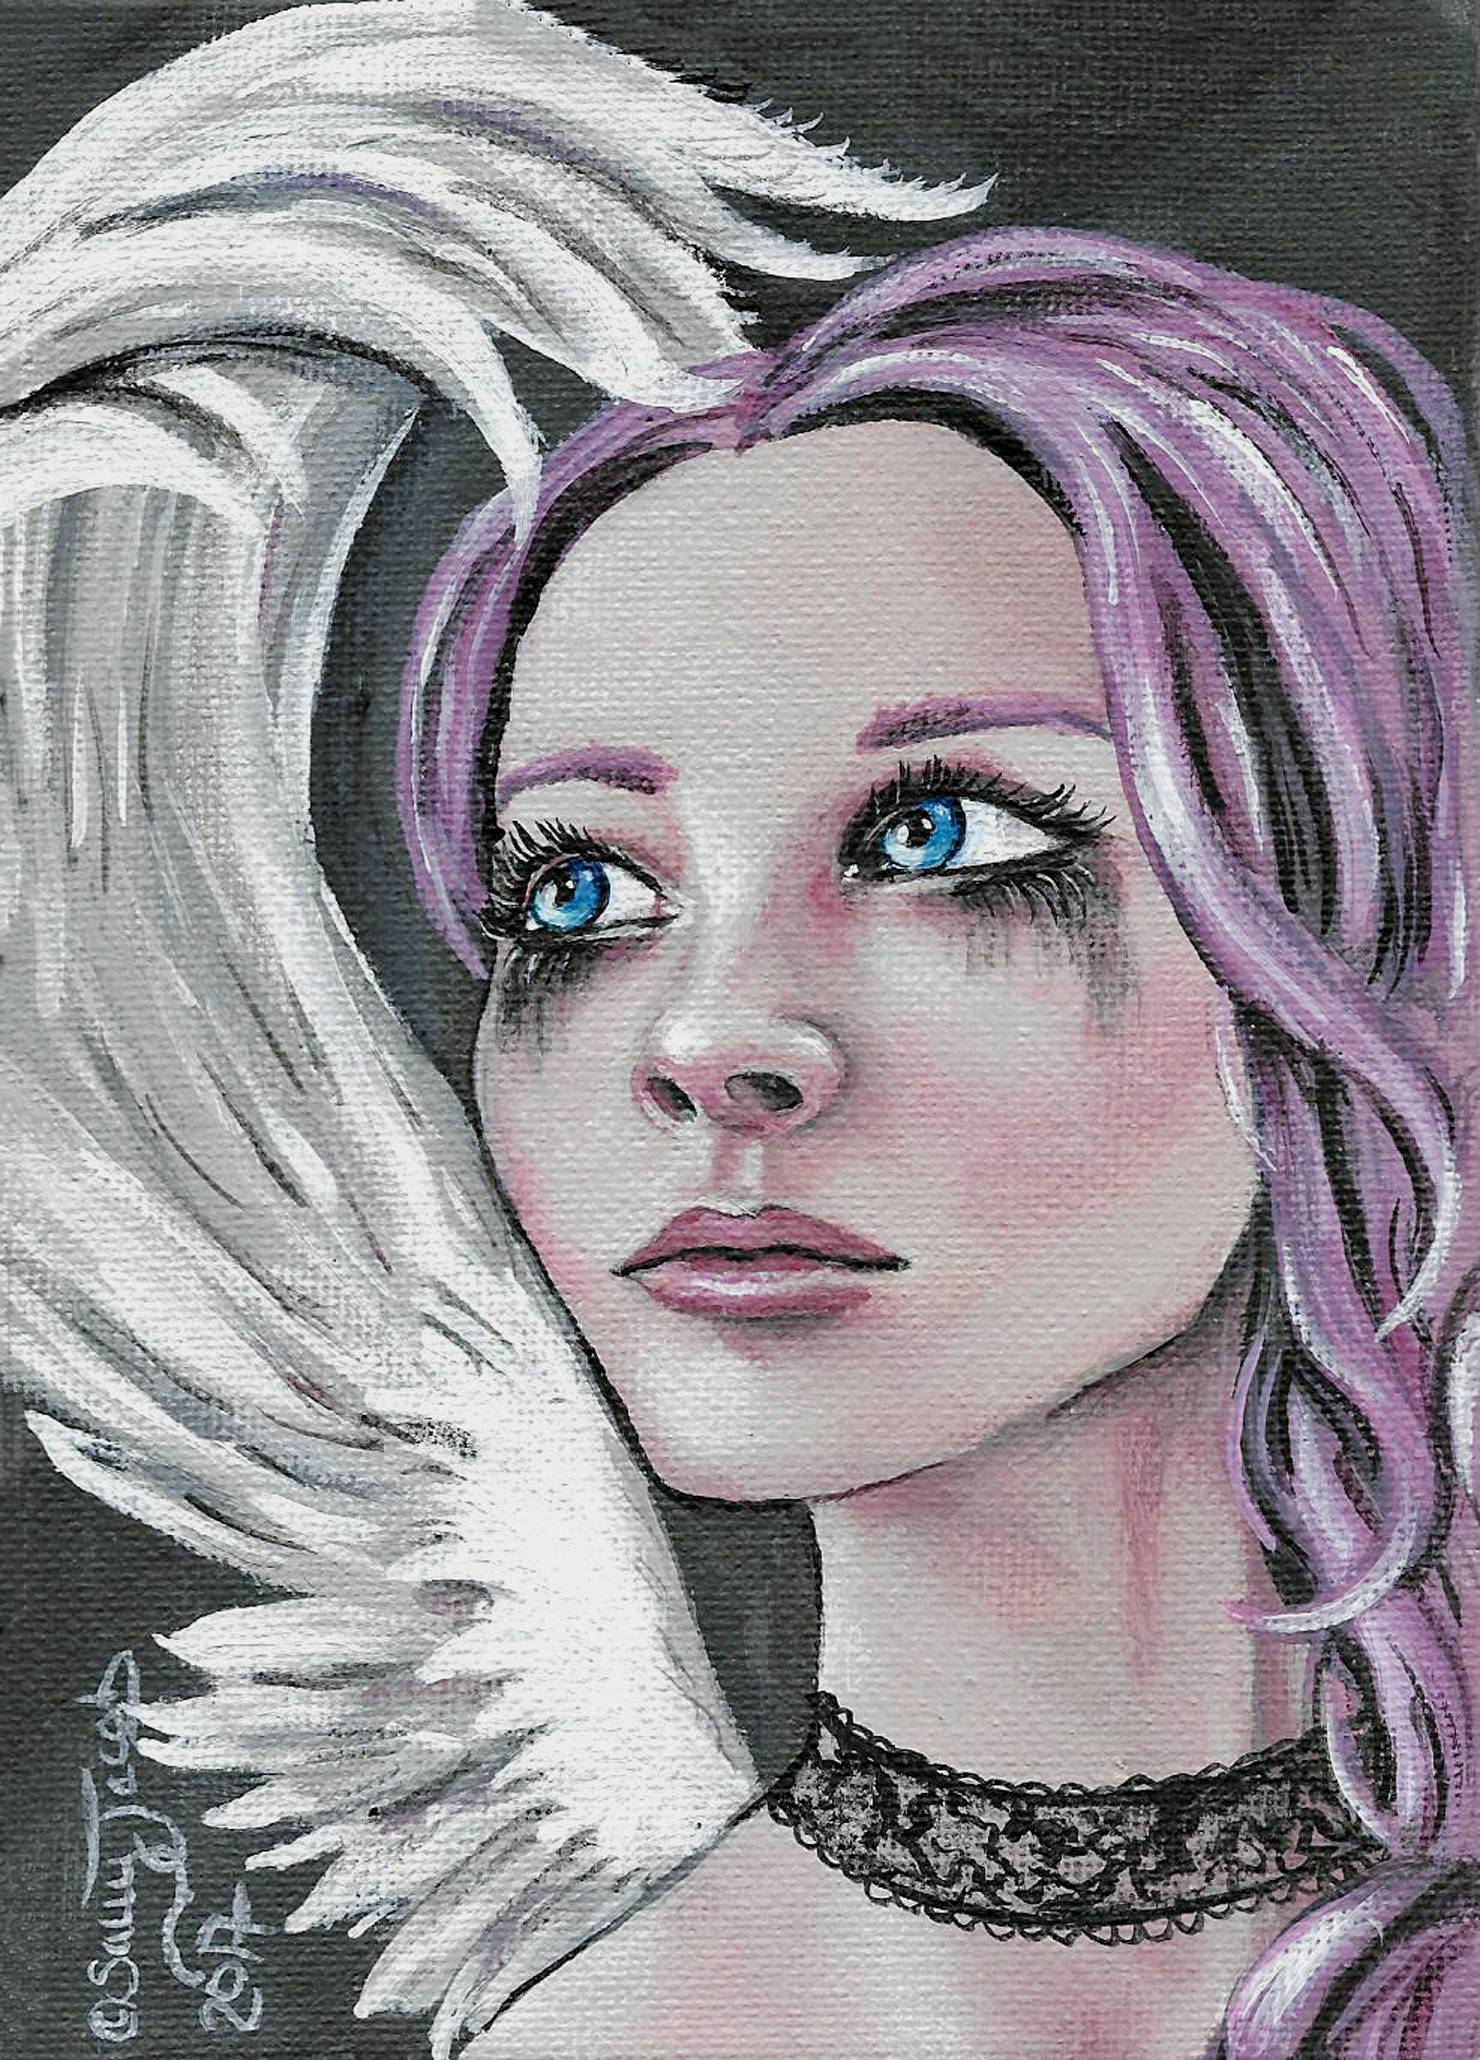 Fallen Angel lowbrow art